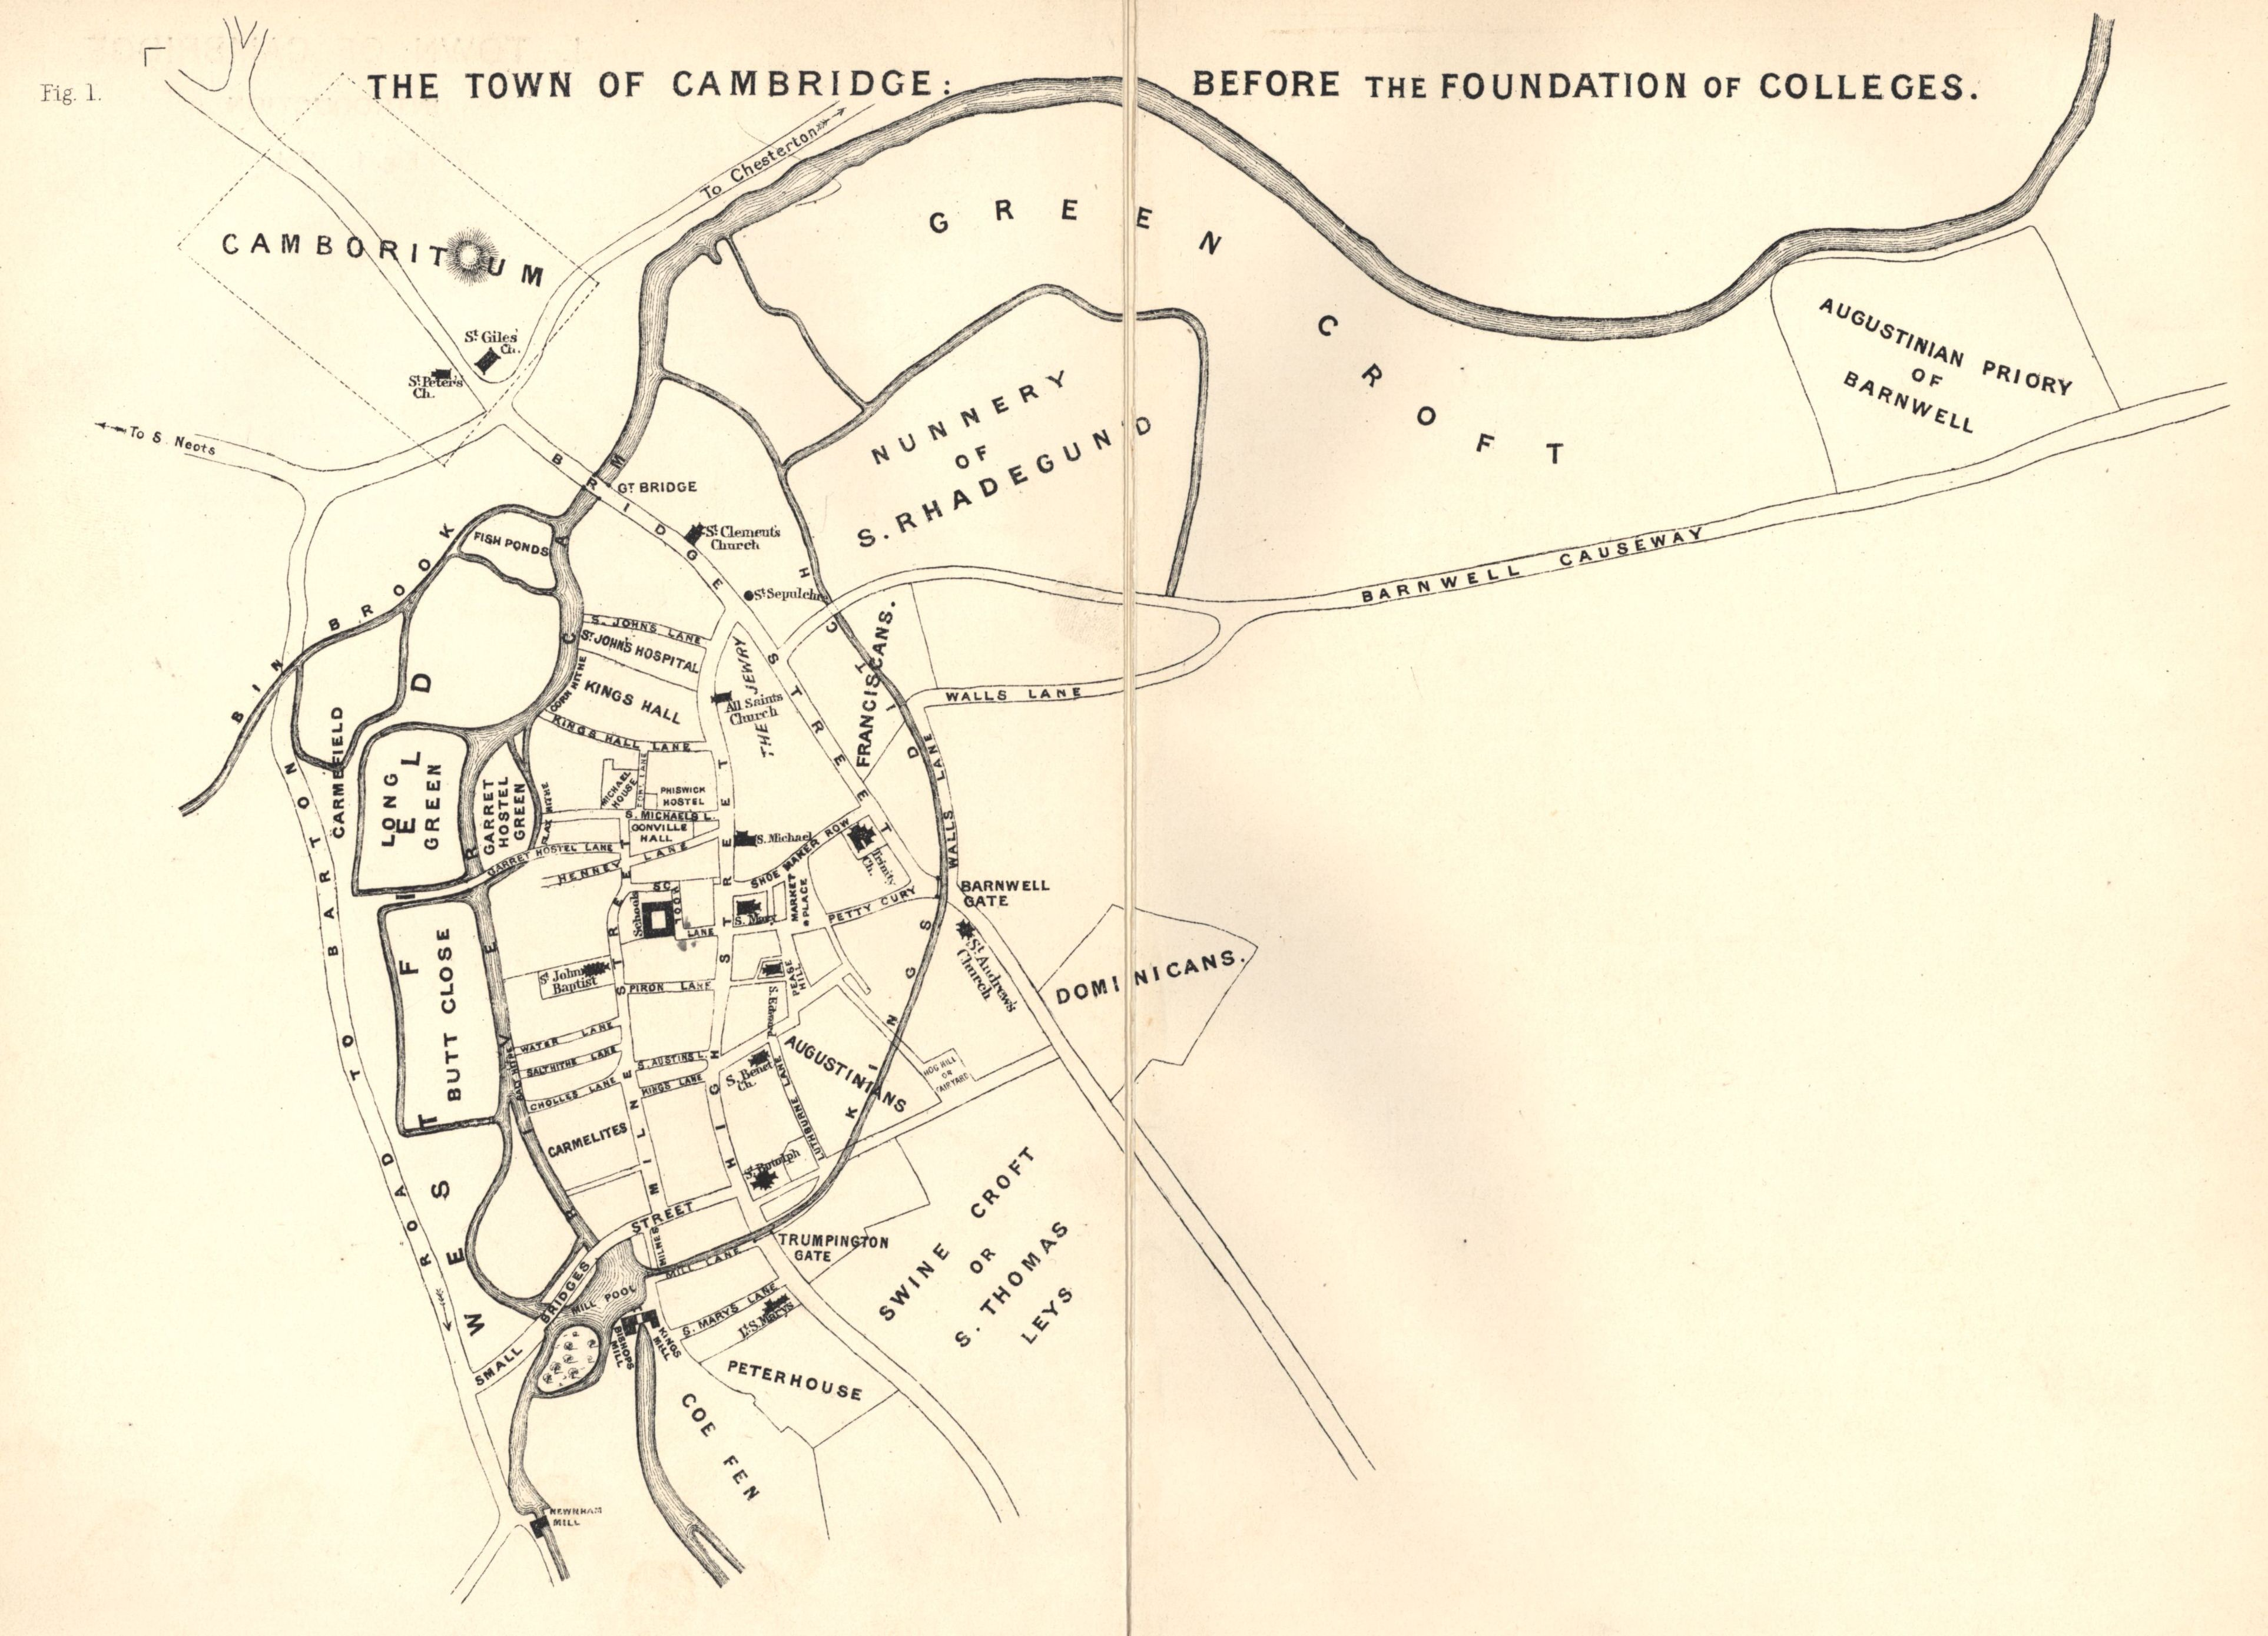 'The Town of Cambridge before the Foundation of the Colleges'. [Willis and Clark, vol. 4, fig. 1]